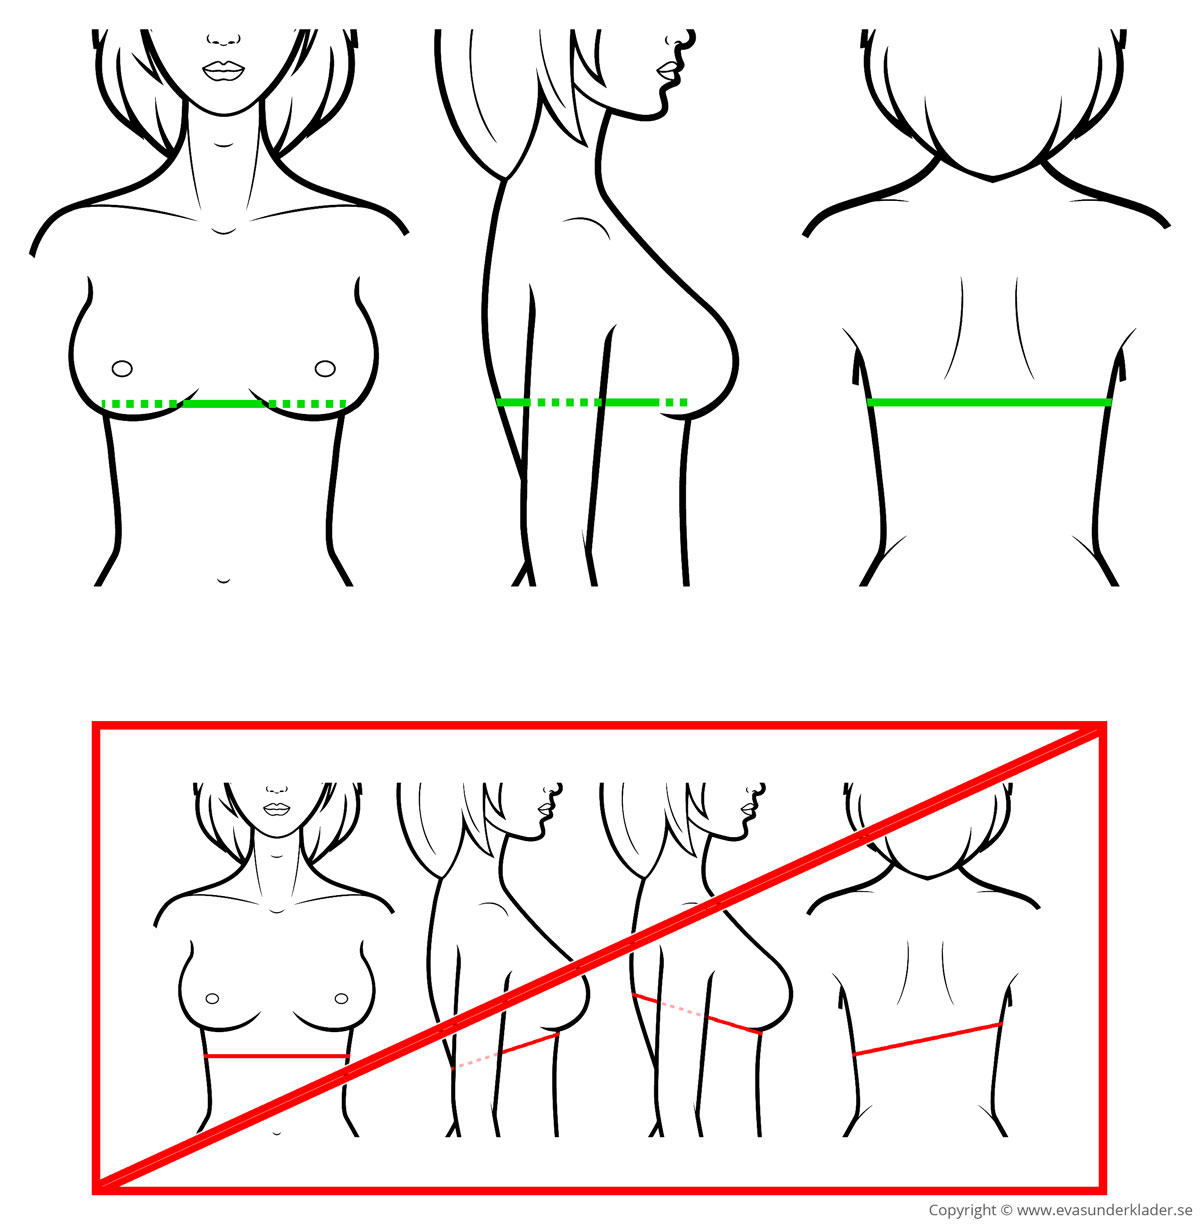 Tape measure placement when  measuring bra band dimensions.